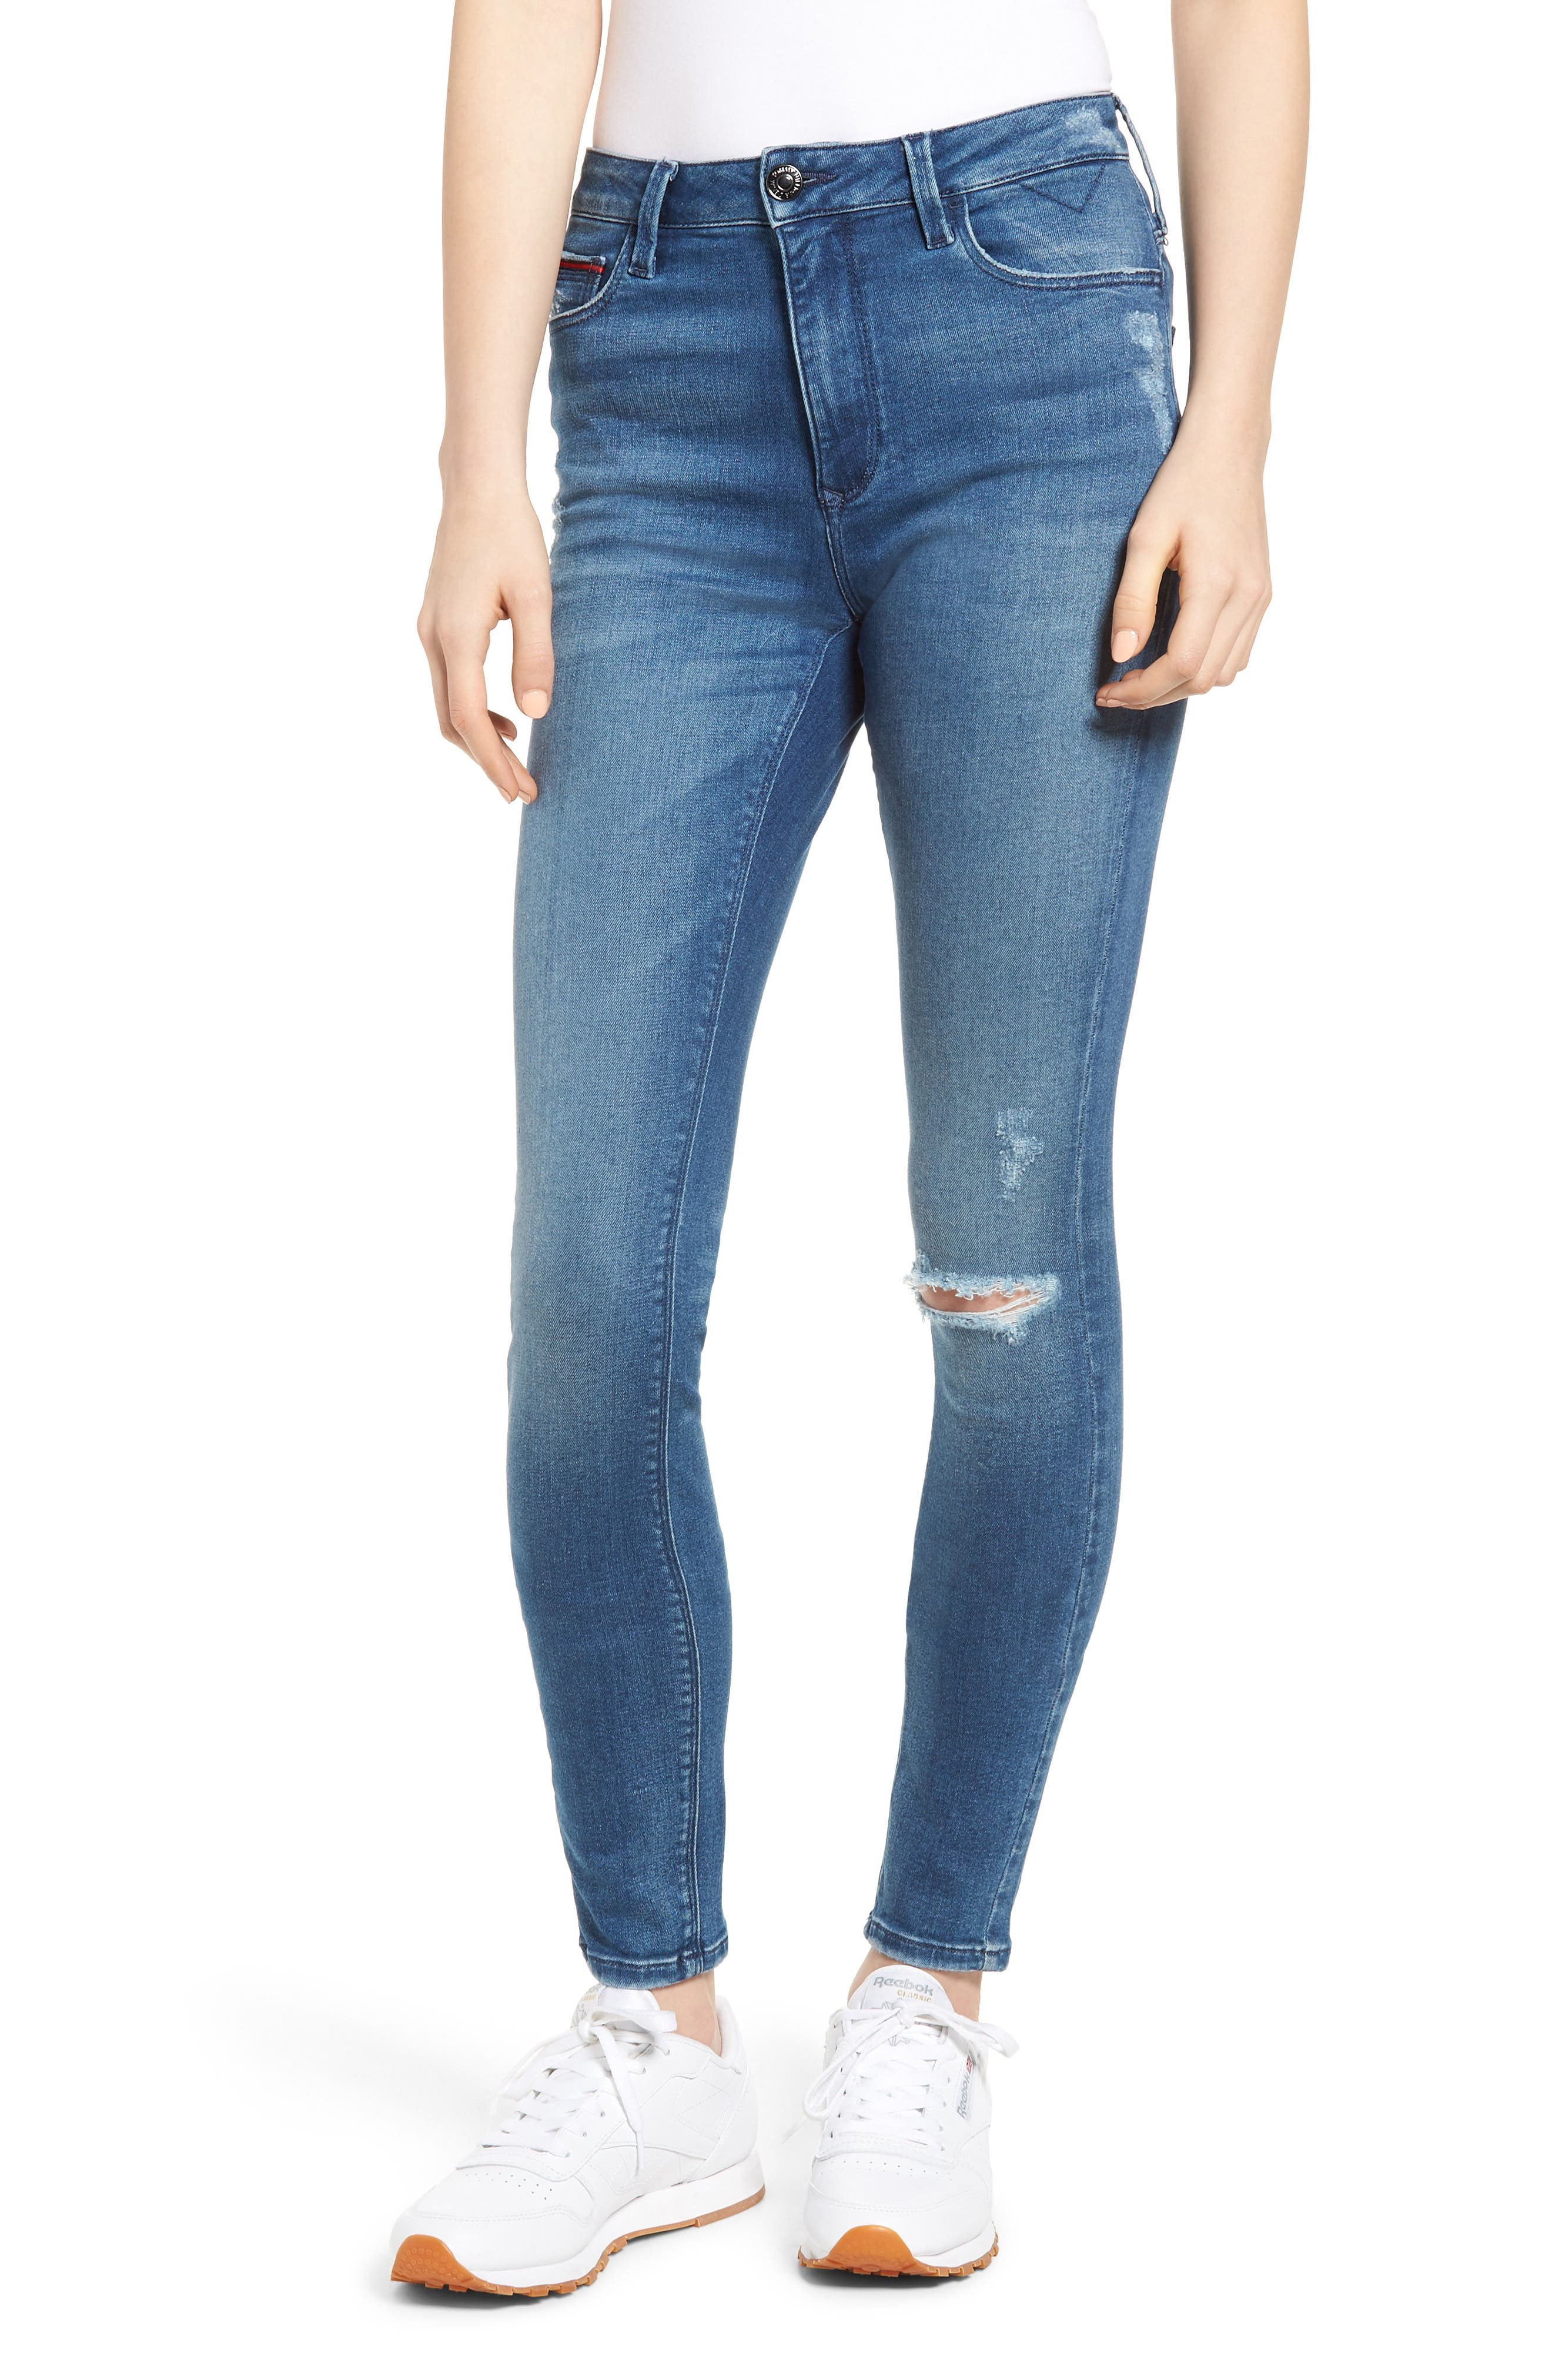 Santana Ripped Skinny Jeans,                             Main thumbnail 1, color,                             Fargo Blue Stretch Destructed